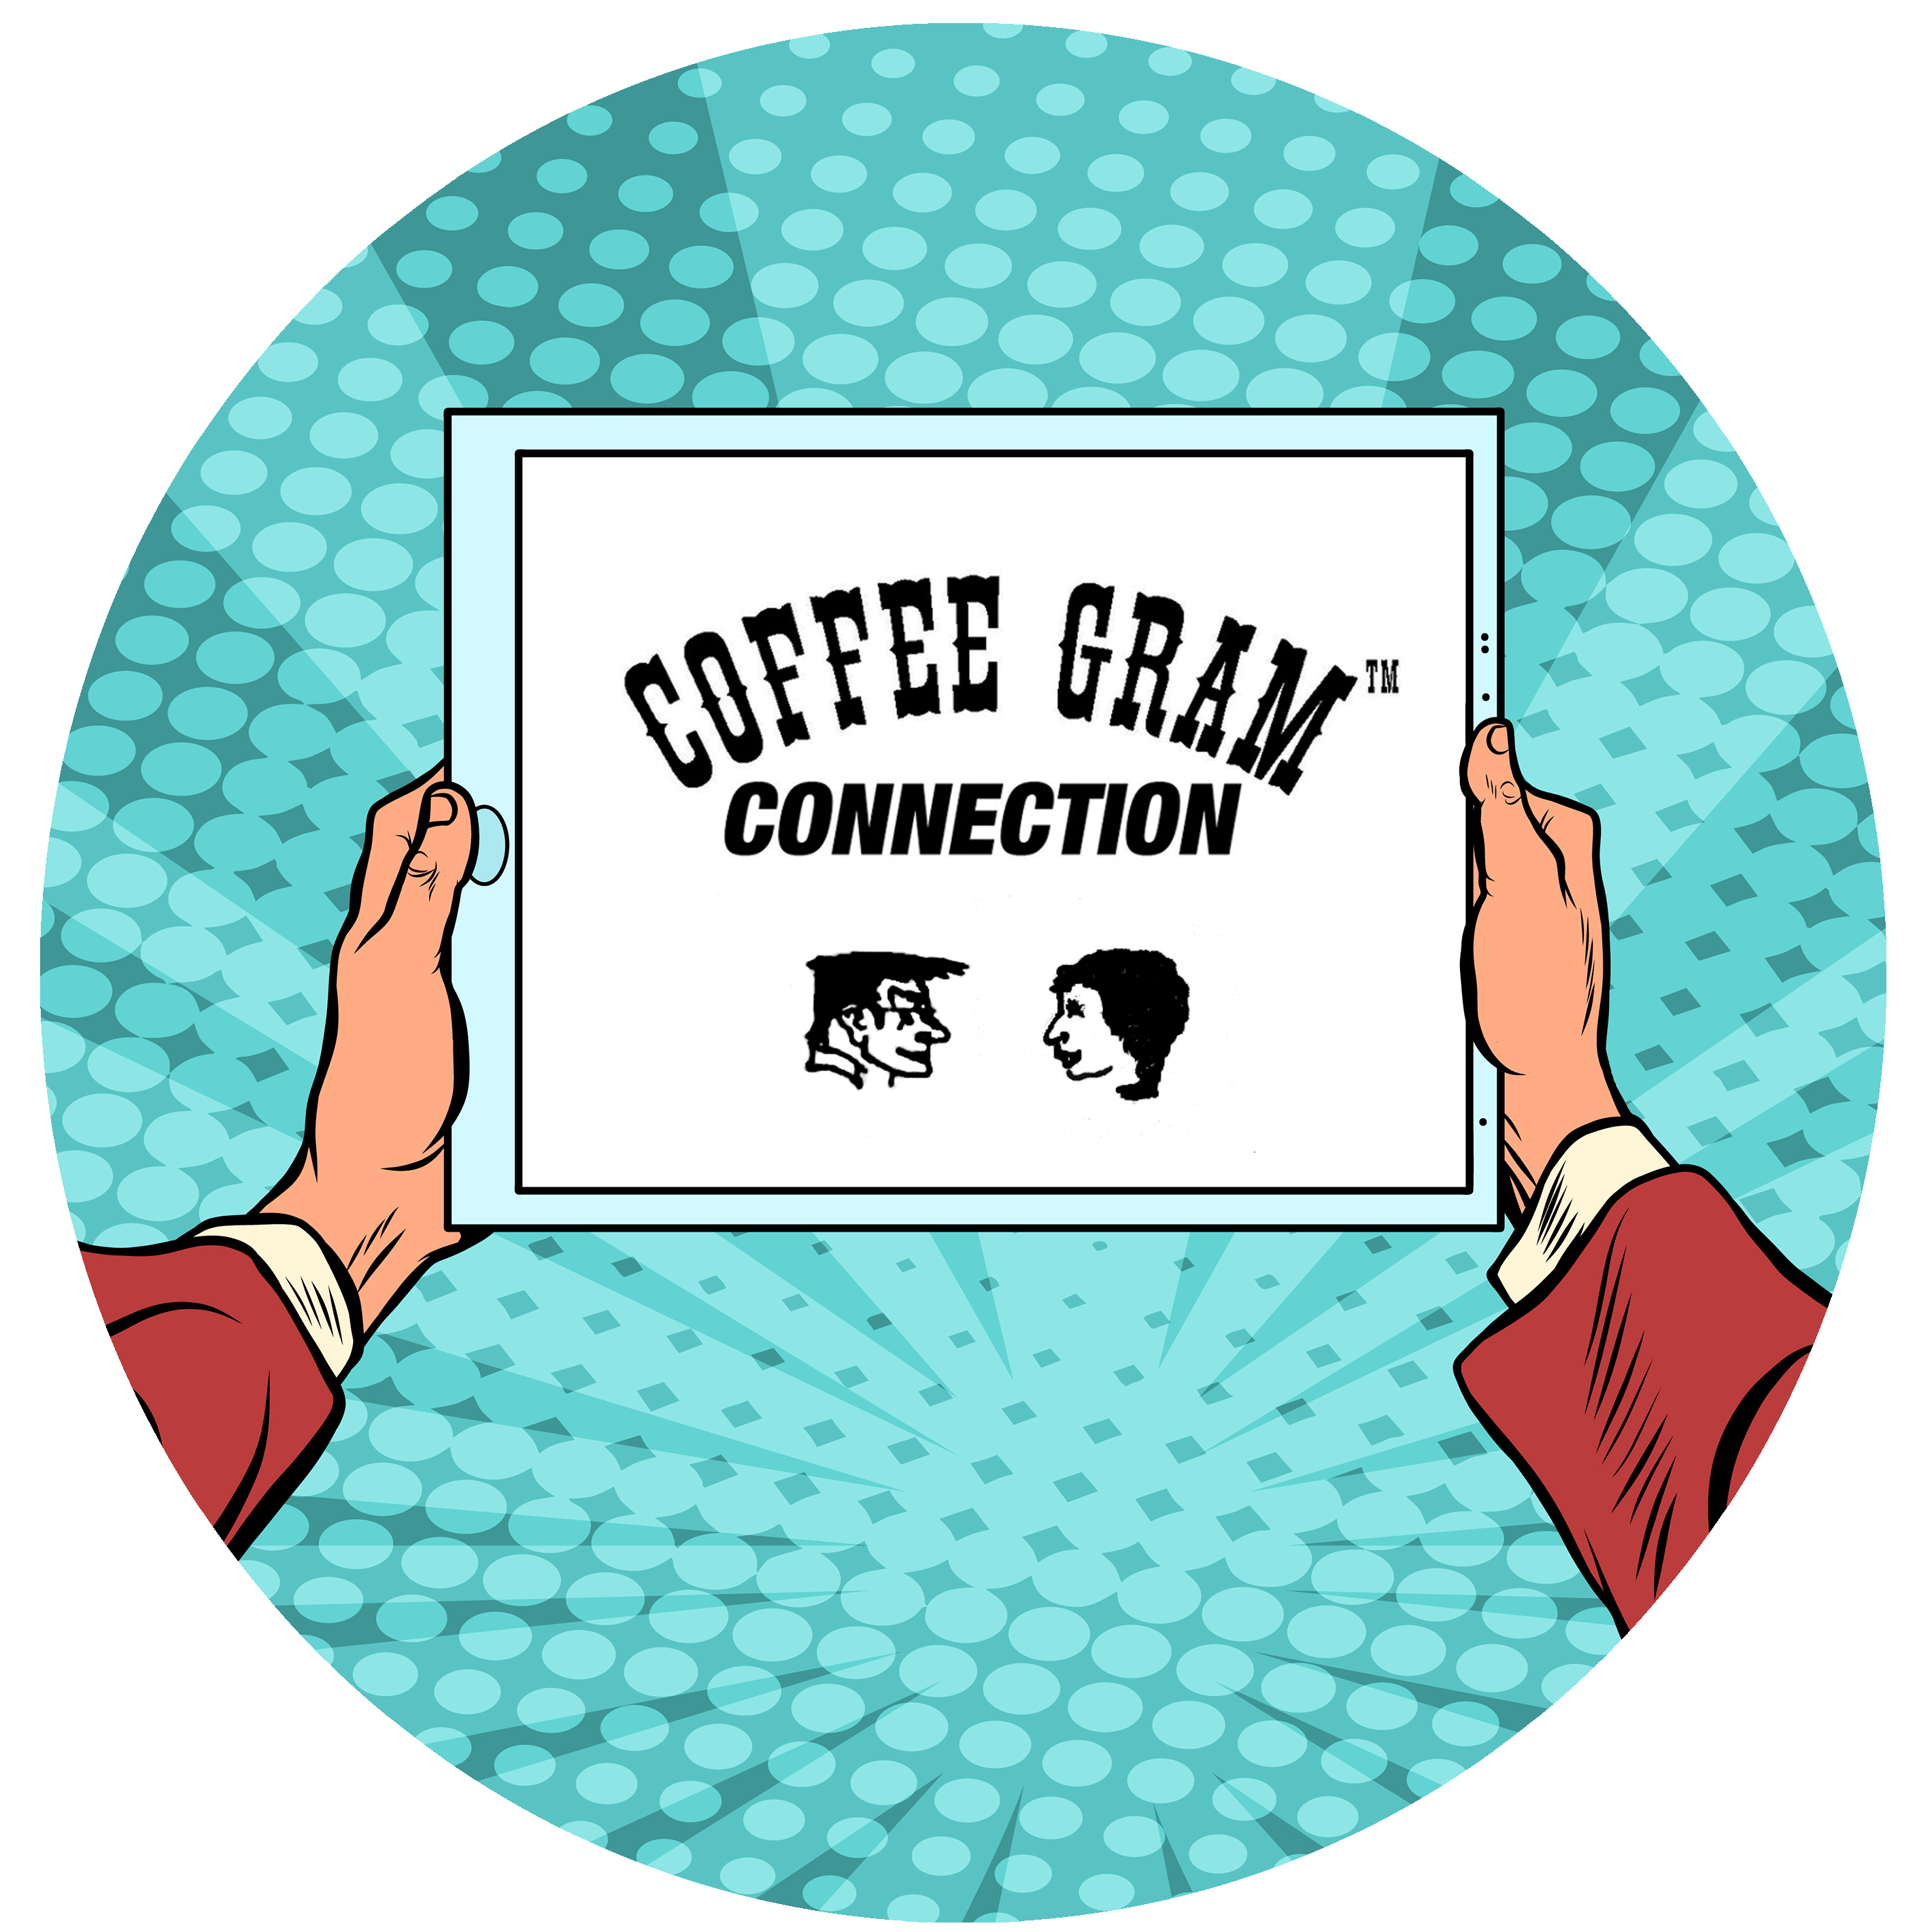 Coffee Gram Connection